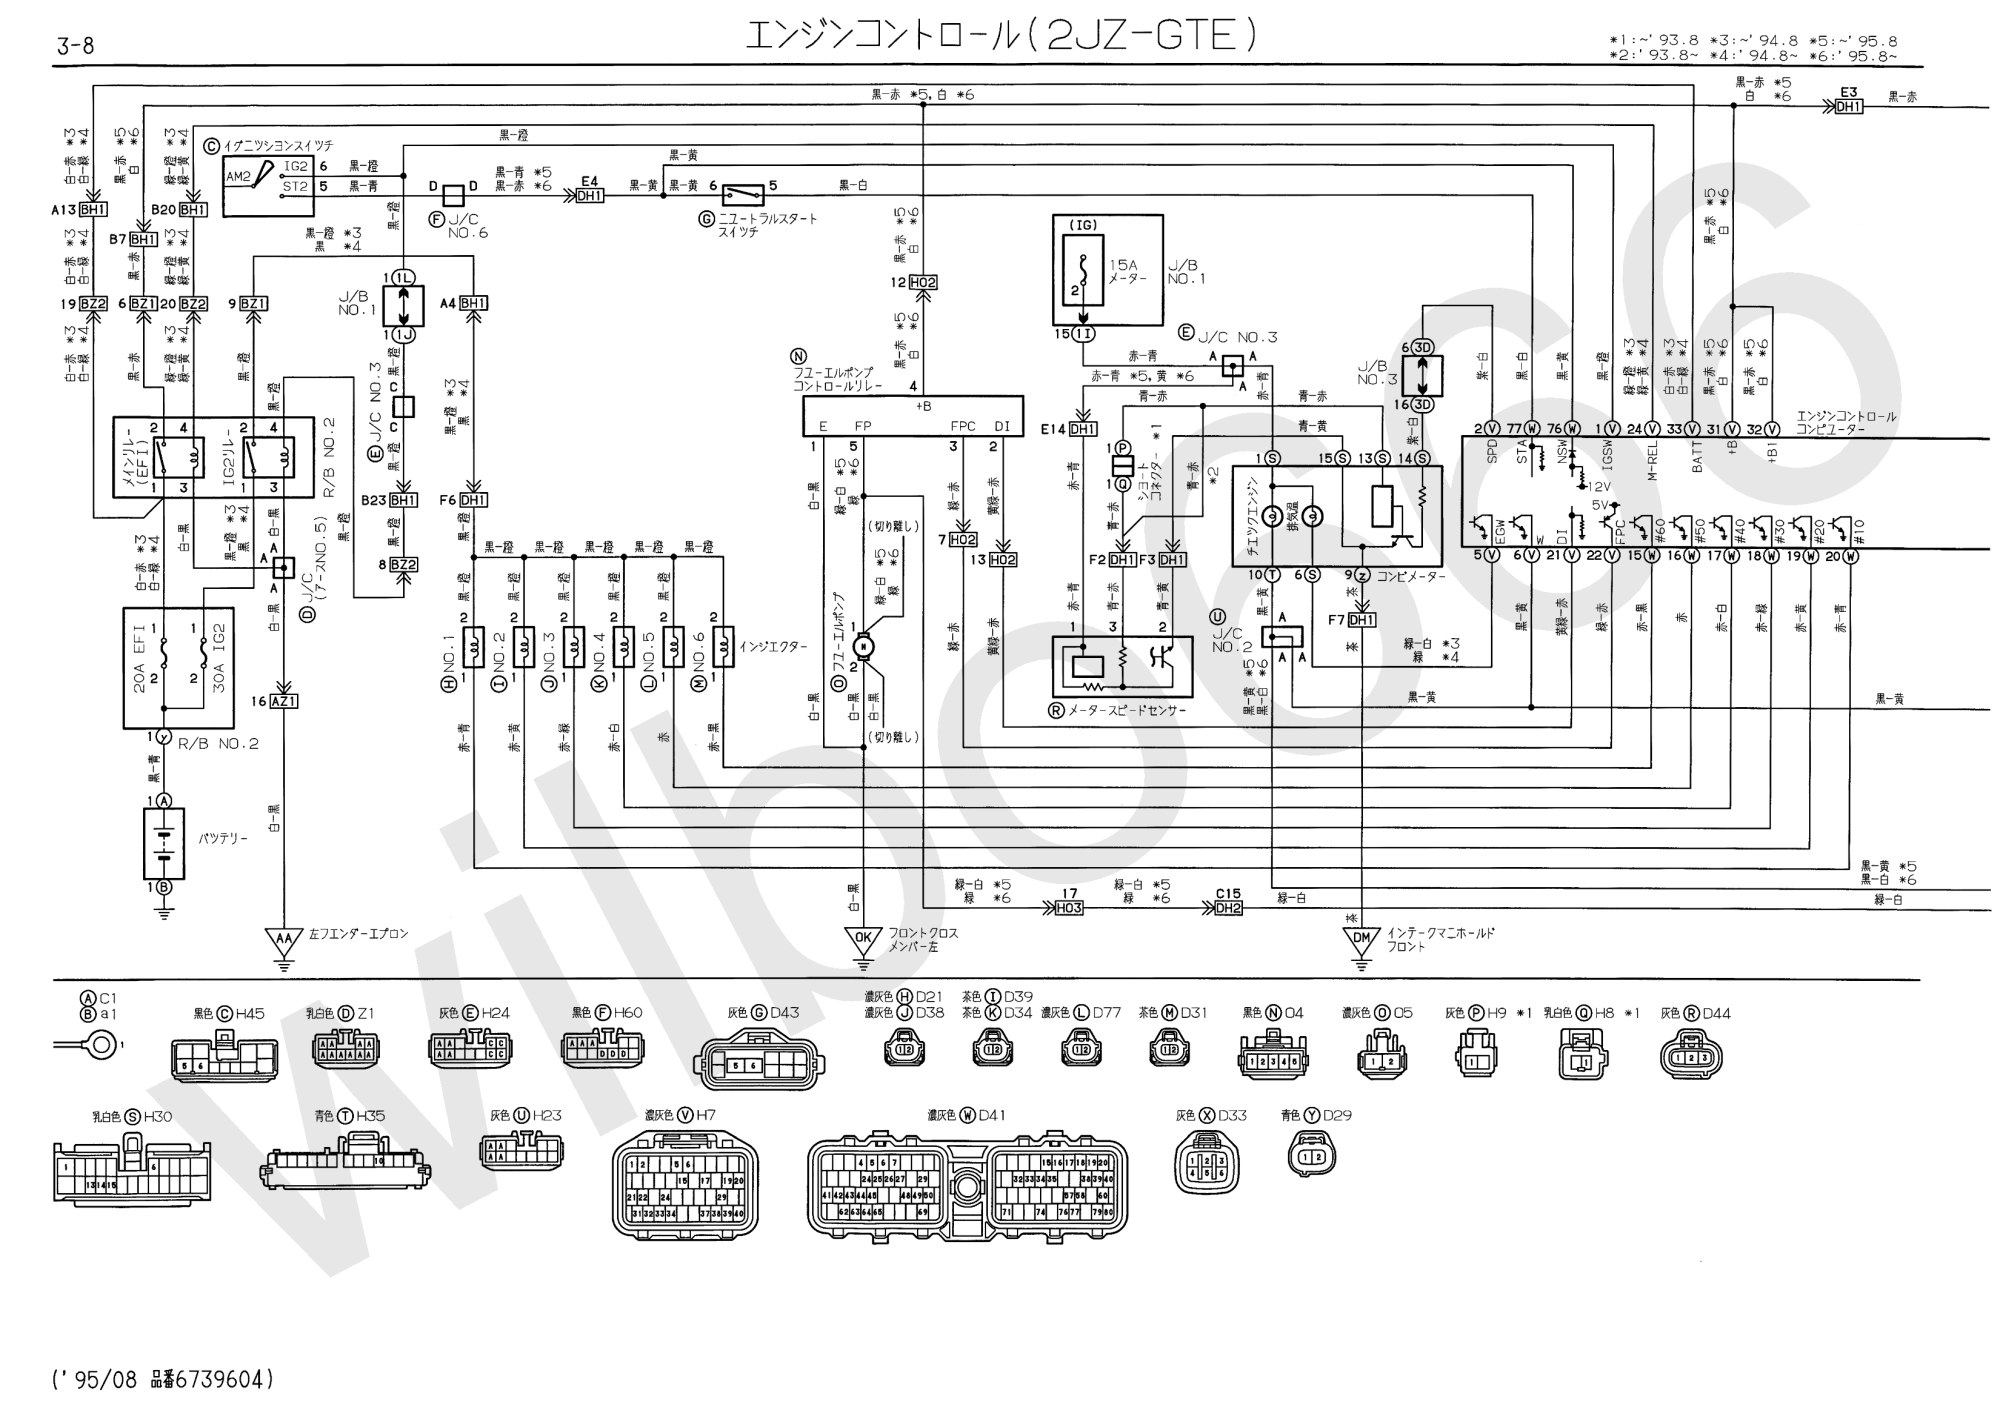 hight resolution of 944 dme diagrams wiring diagramdme wiring diagram fk ogewqoua slankaviktcenter info u2022ecu schematics wiring